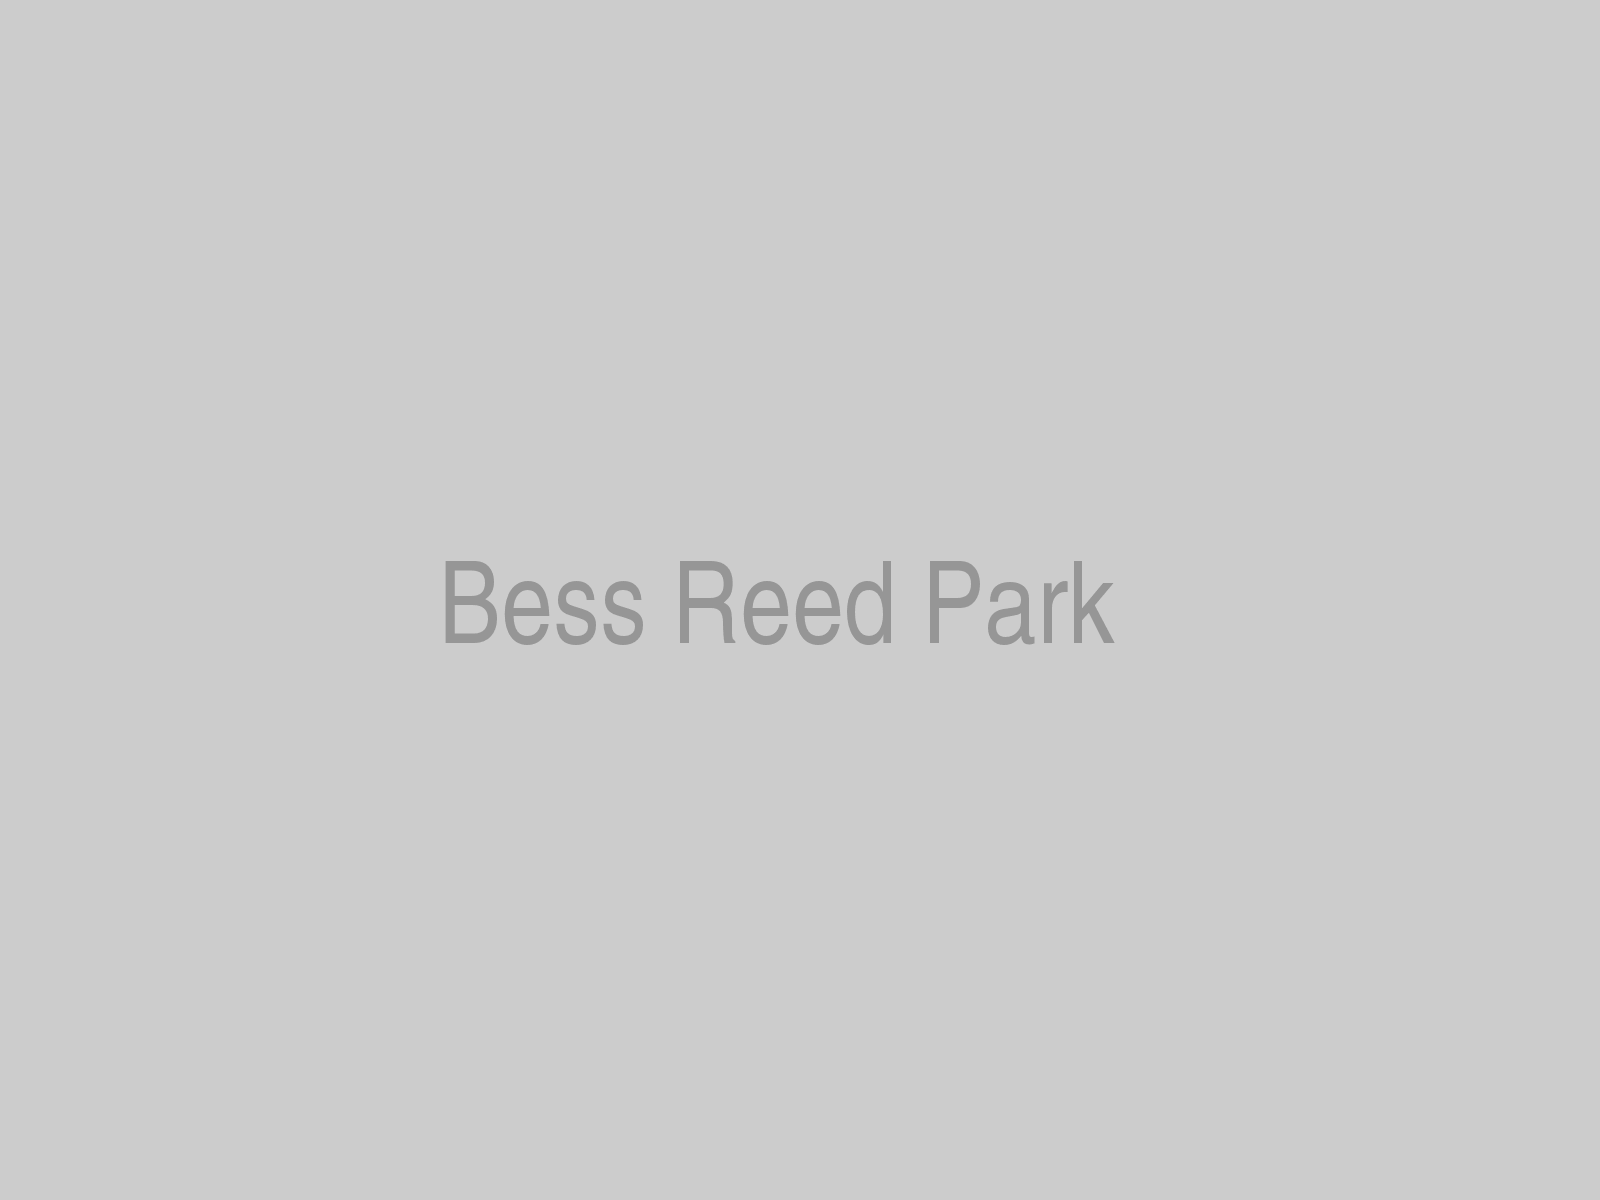 Bess Reed Park